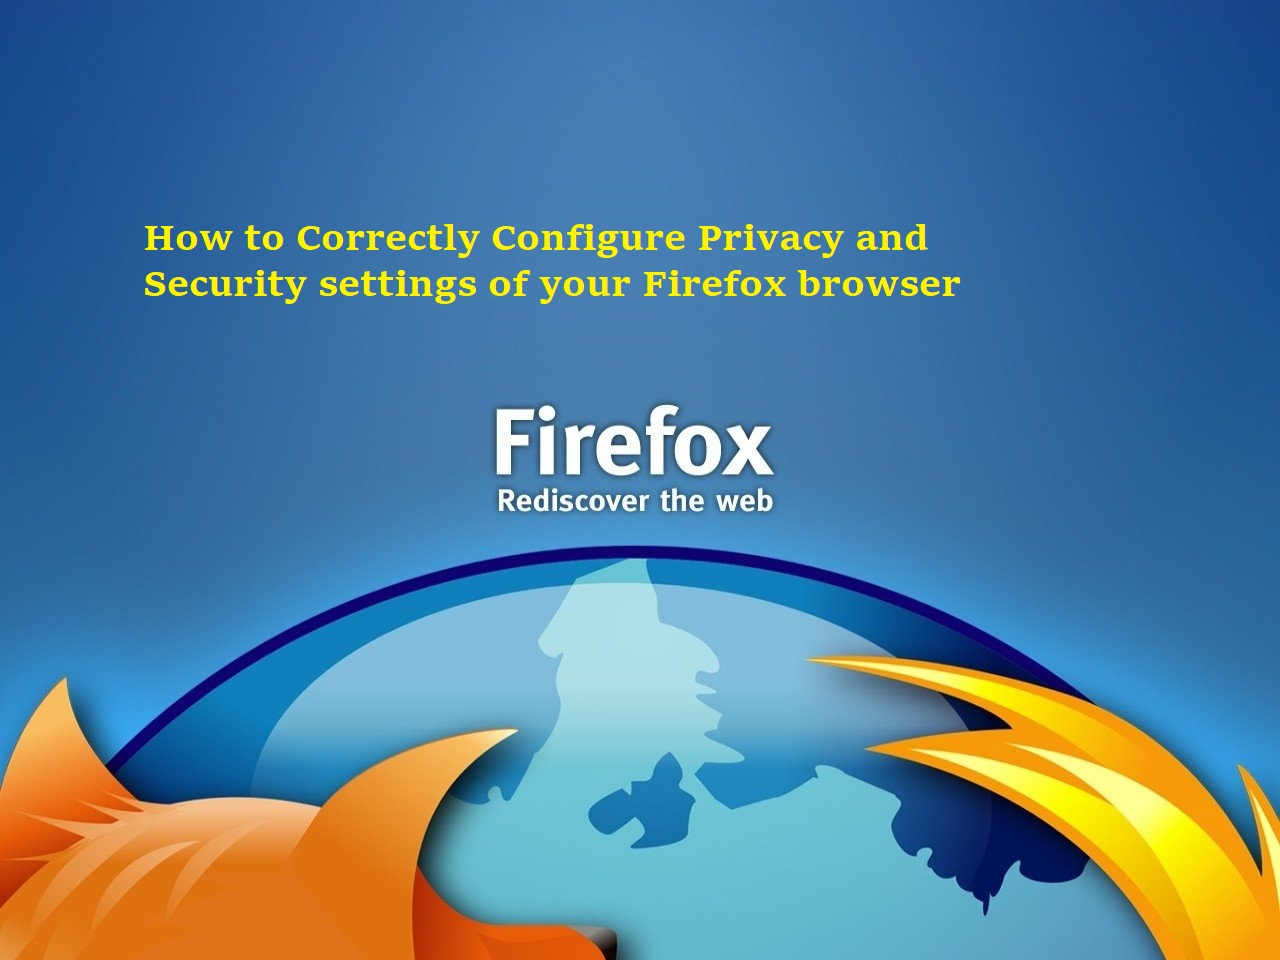 How to Correctly Configure Privacy and Security settings of your Firefox browser